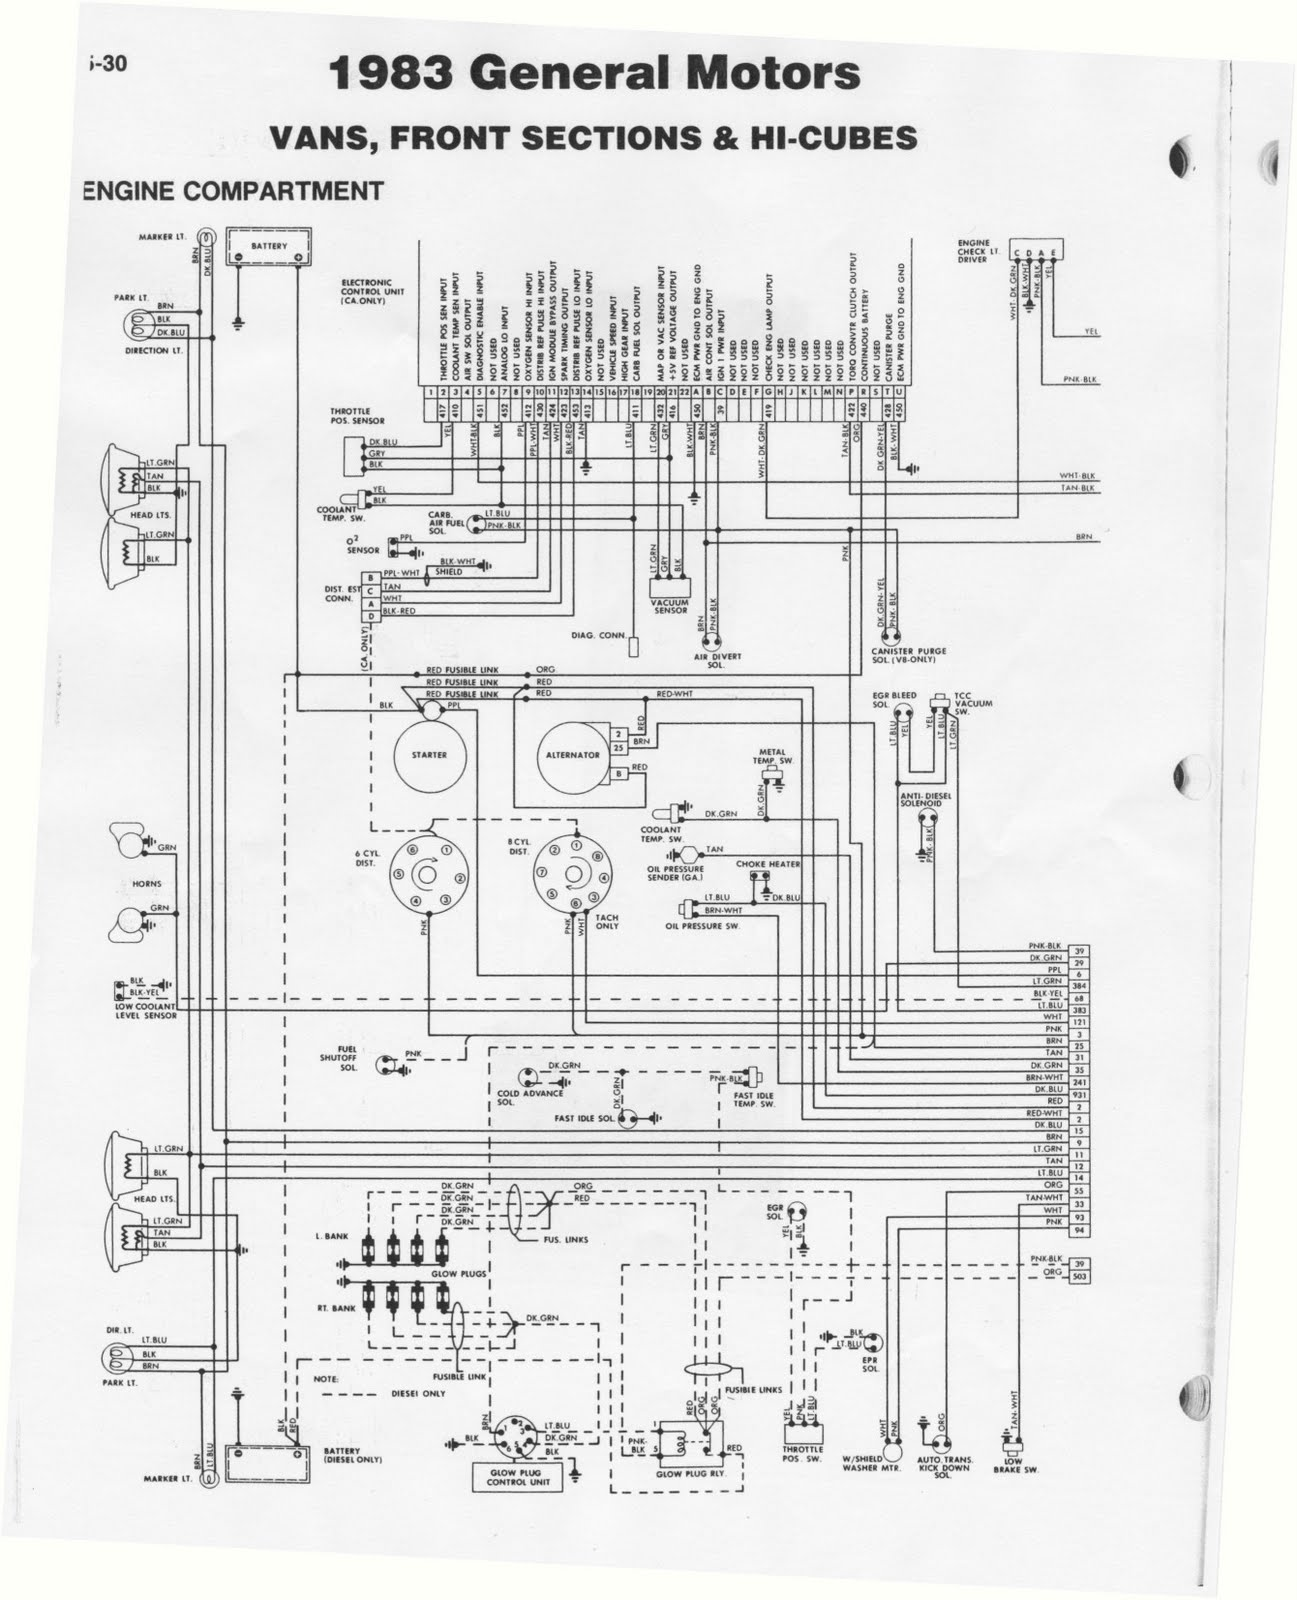 bounder motorhome wiring schematic wiring diagram used1999 bounder wiring diagram wiring diagram schematic bounder motorhome wiring [ 1297 x 1600 Pixel ]